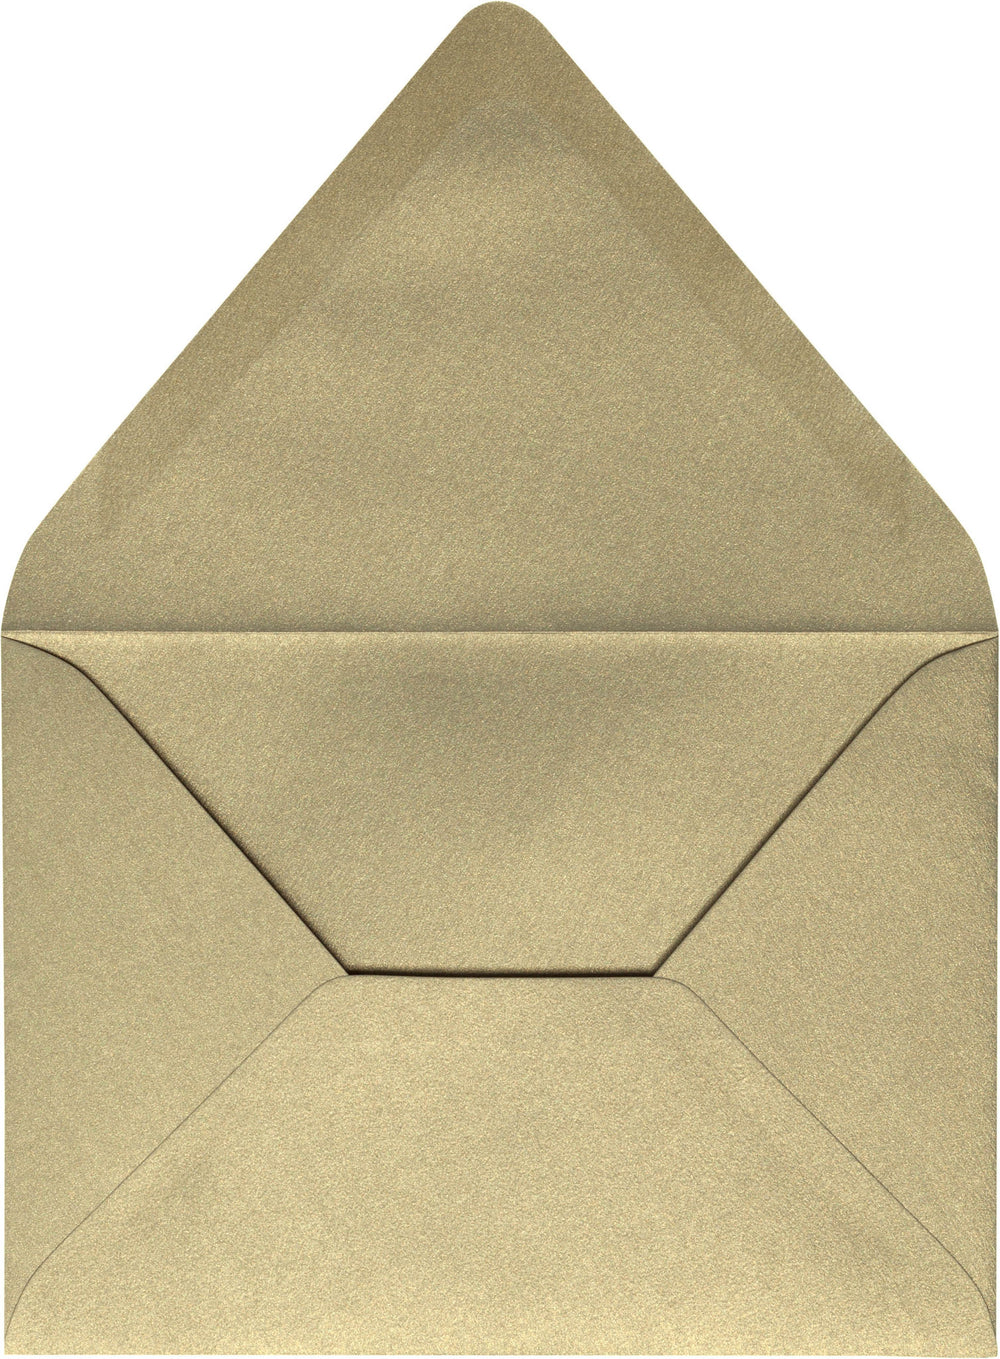 "A-7 Gold Leaf Metallic Euro Flap Envelopes (5 1/4"" x 7 1/4"")"